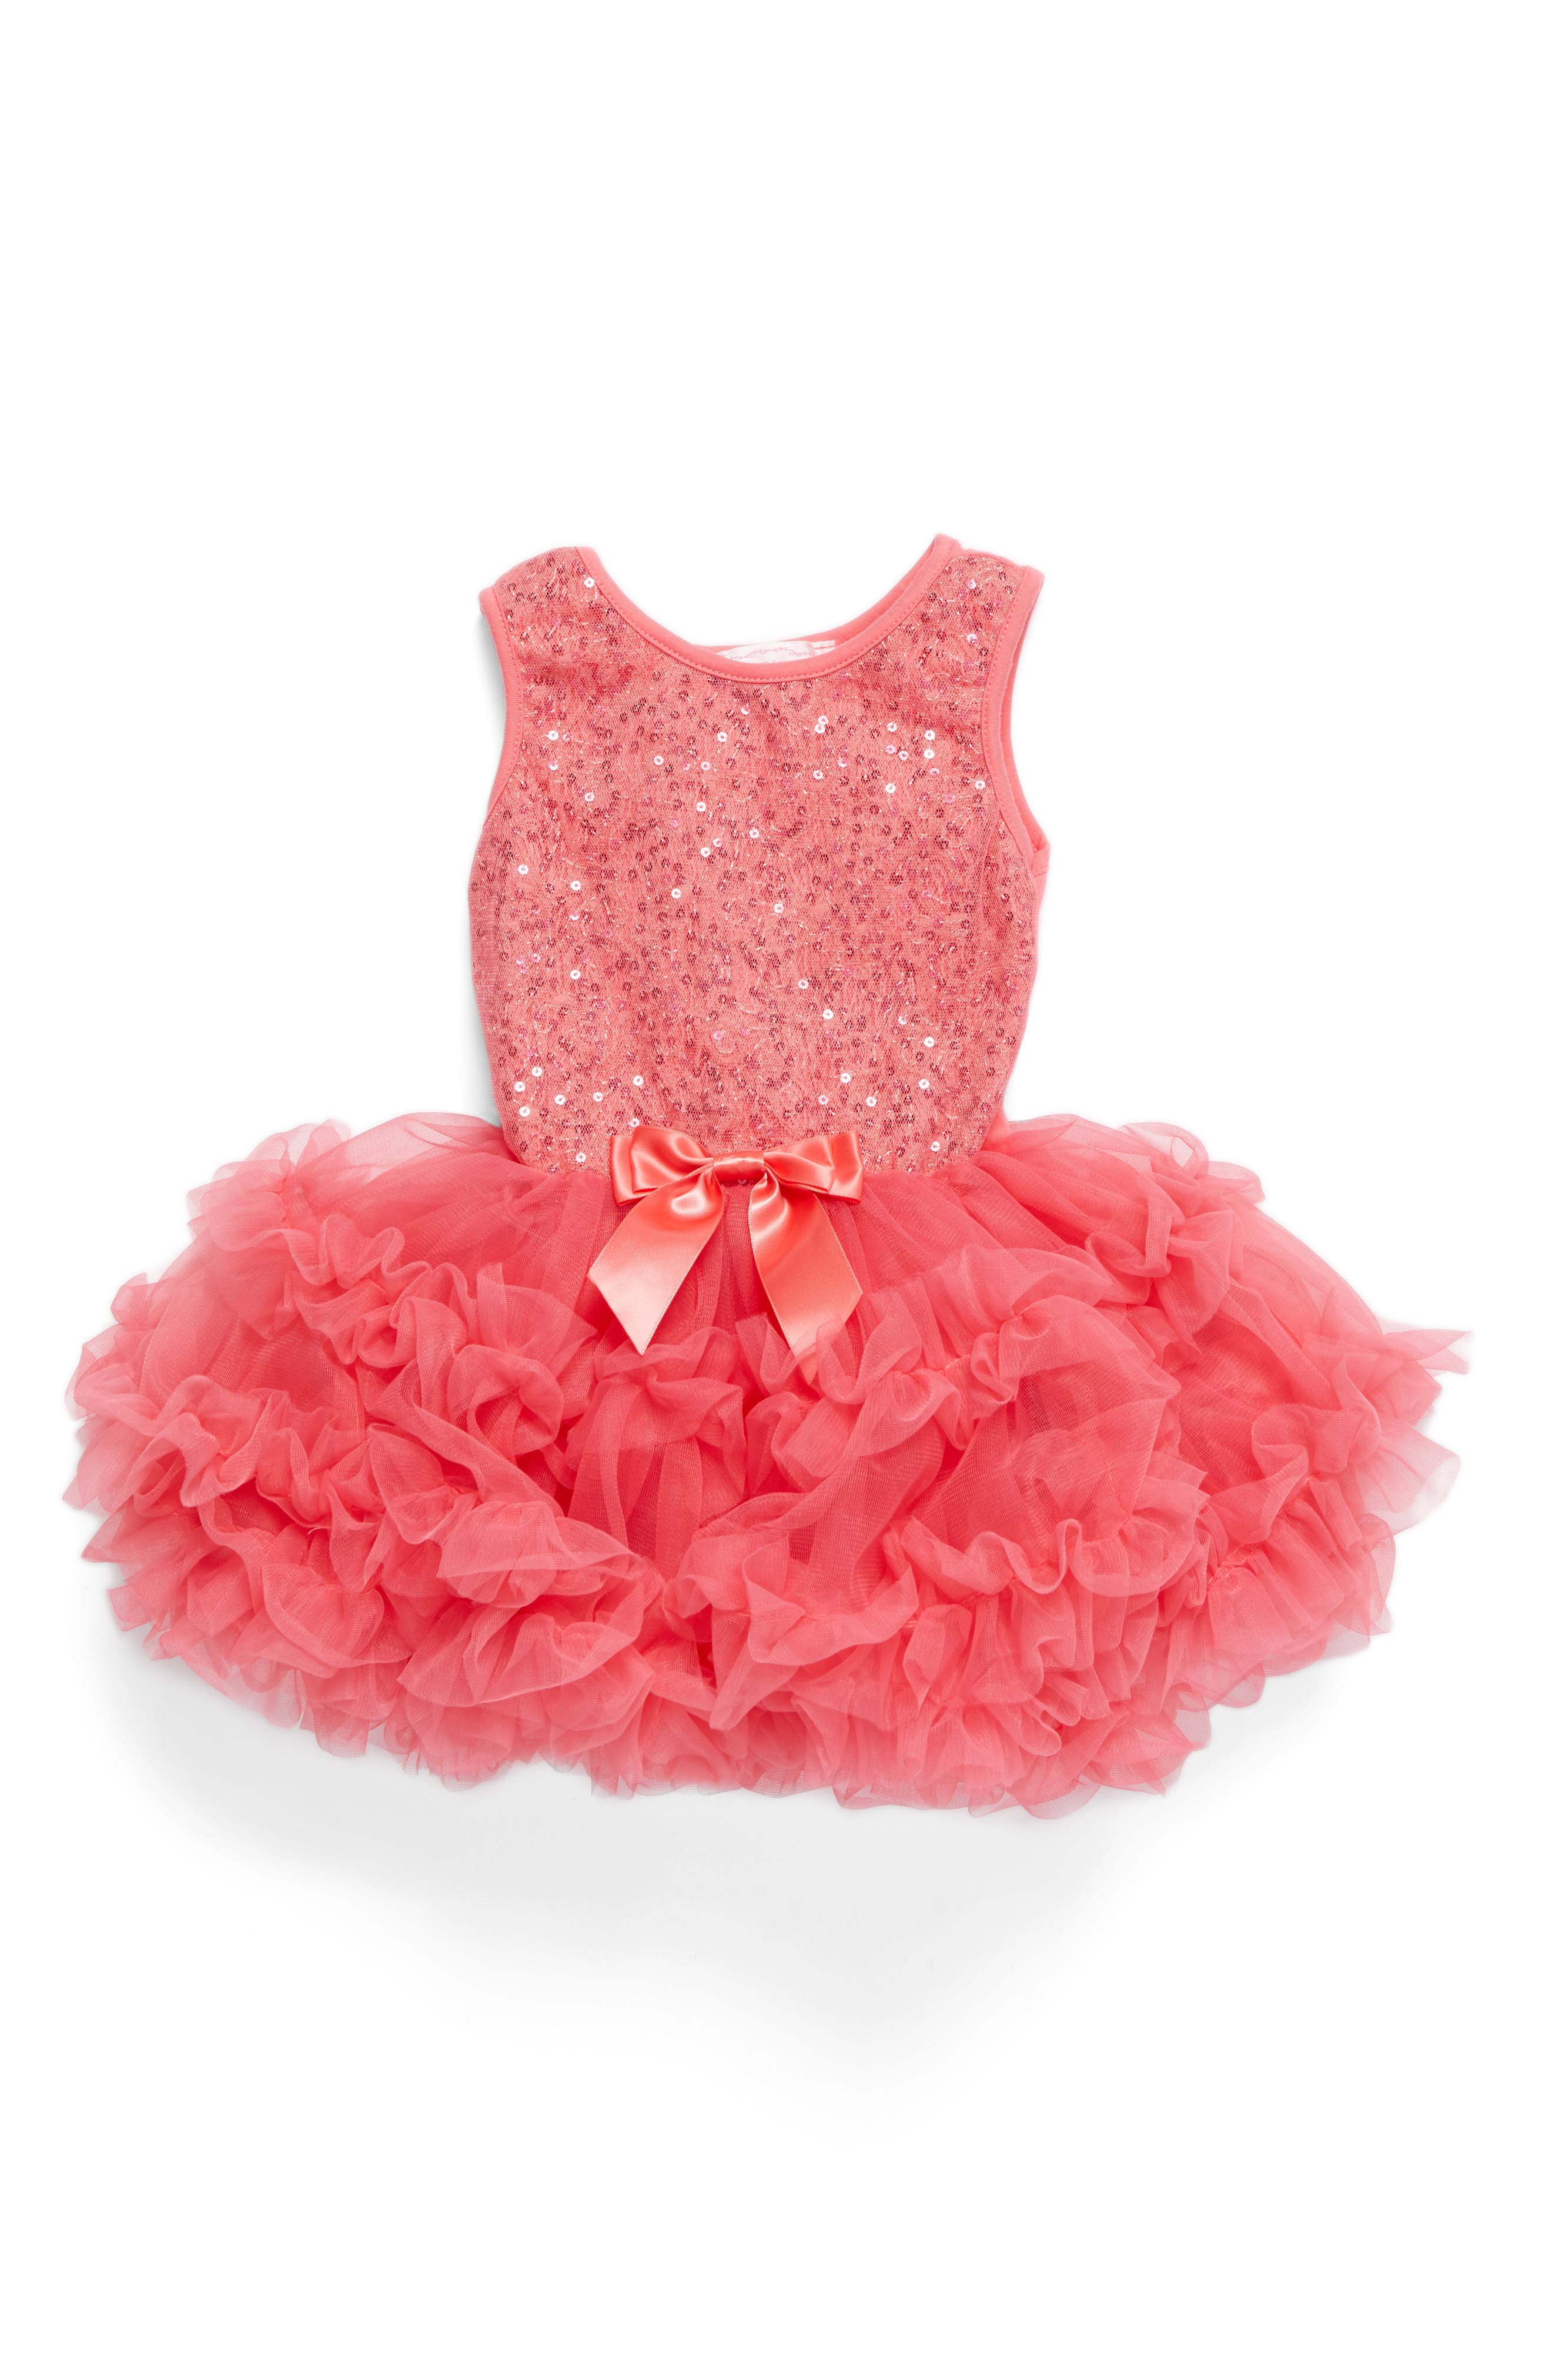 Main Image - Popatu Sequin Pettidress (Baby Girls)